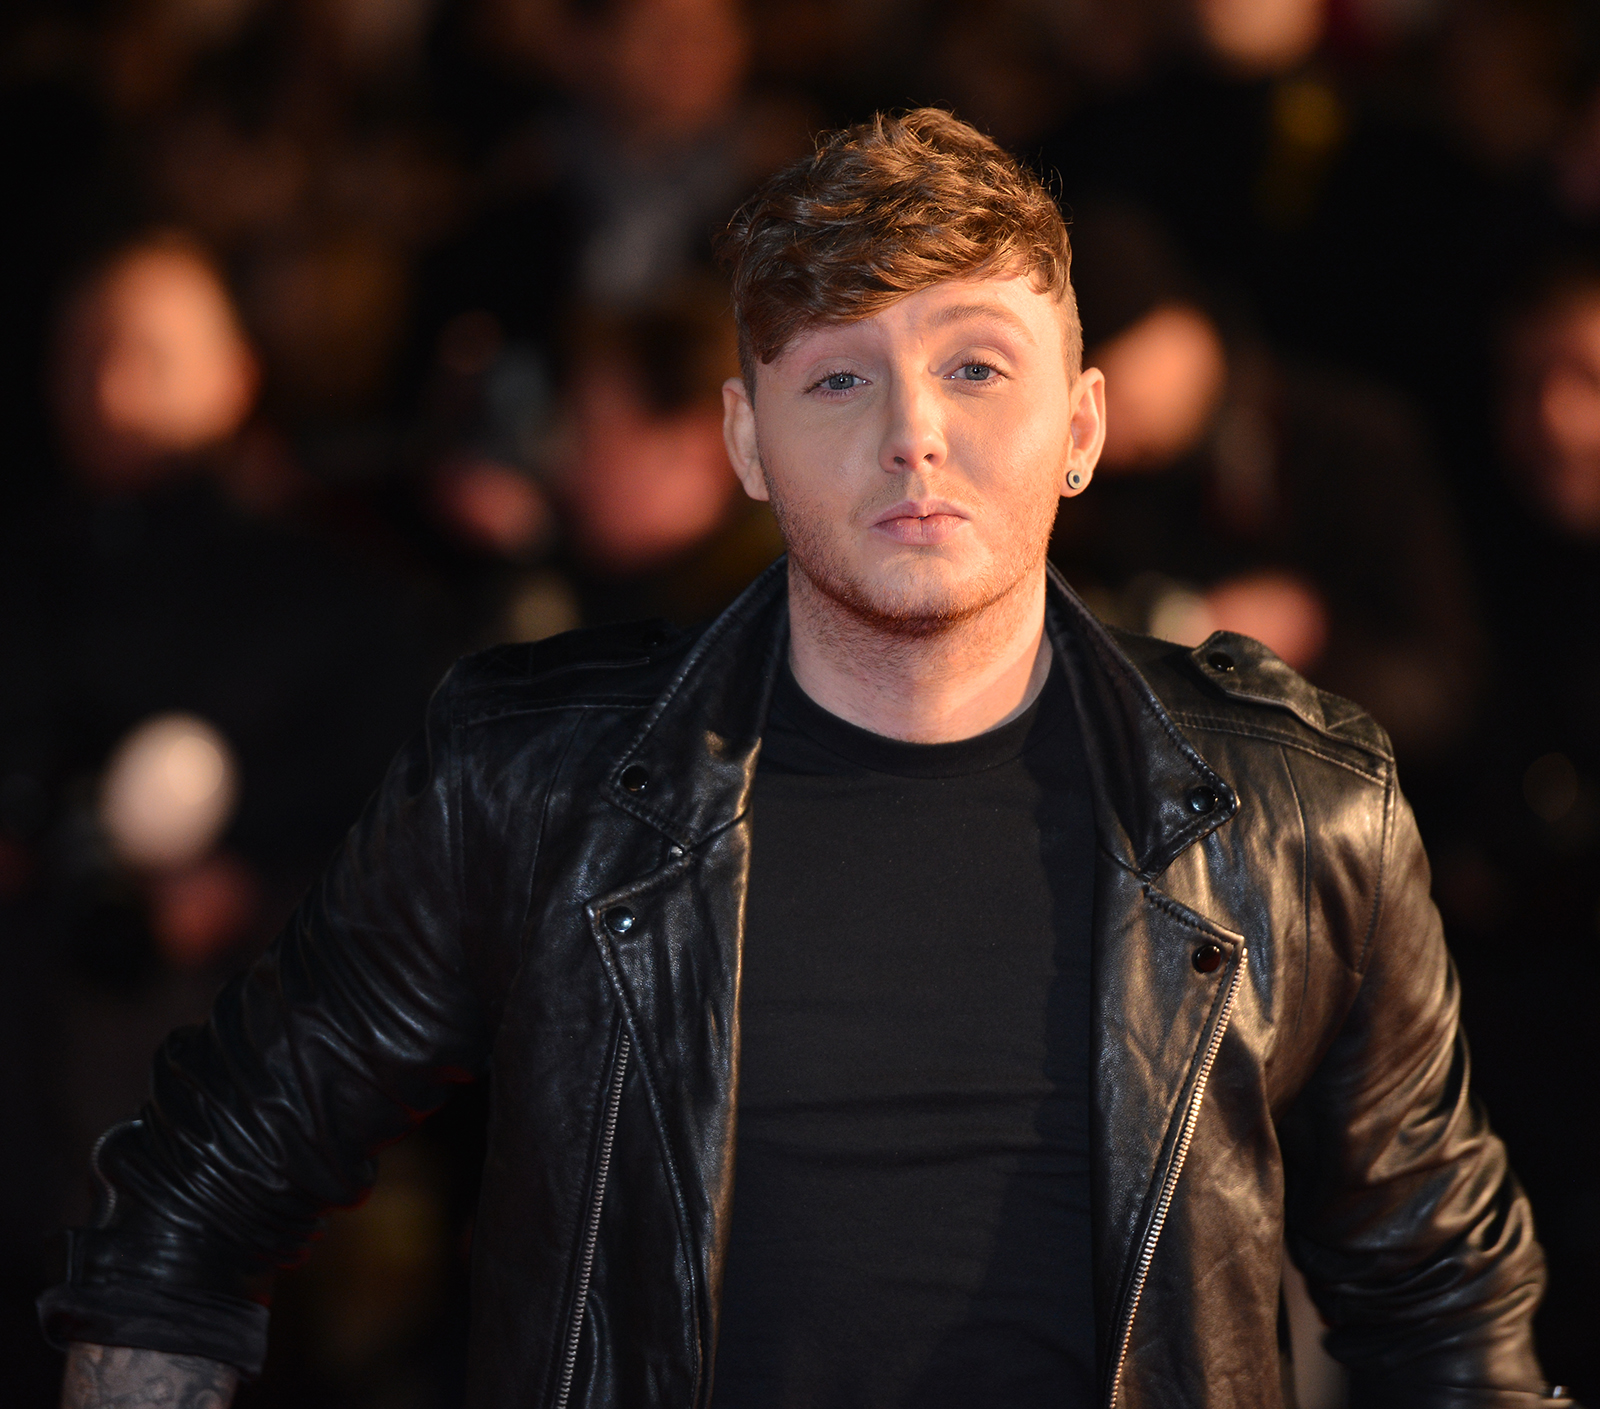 Who is james arthur